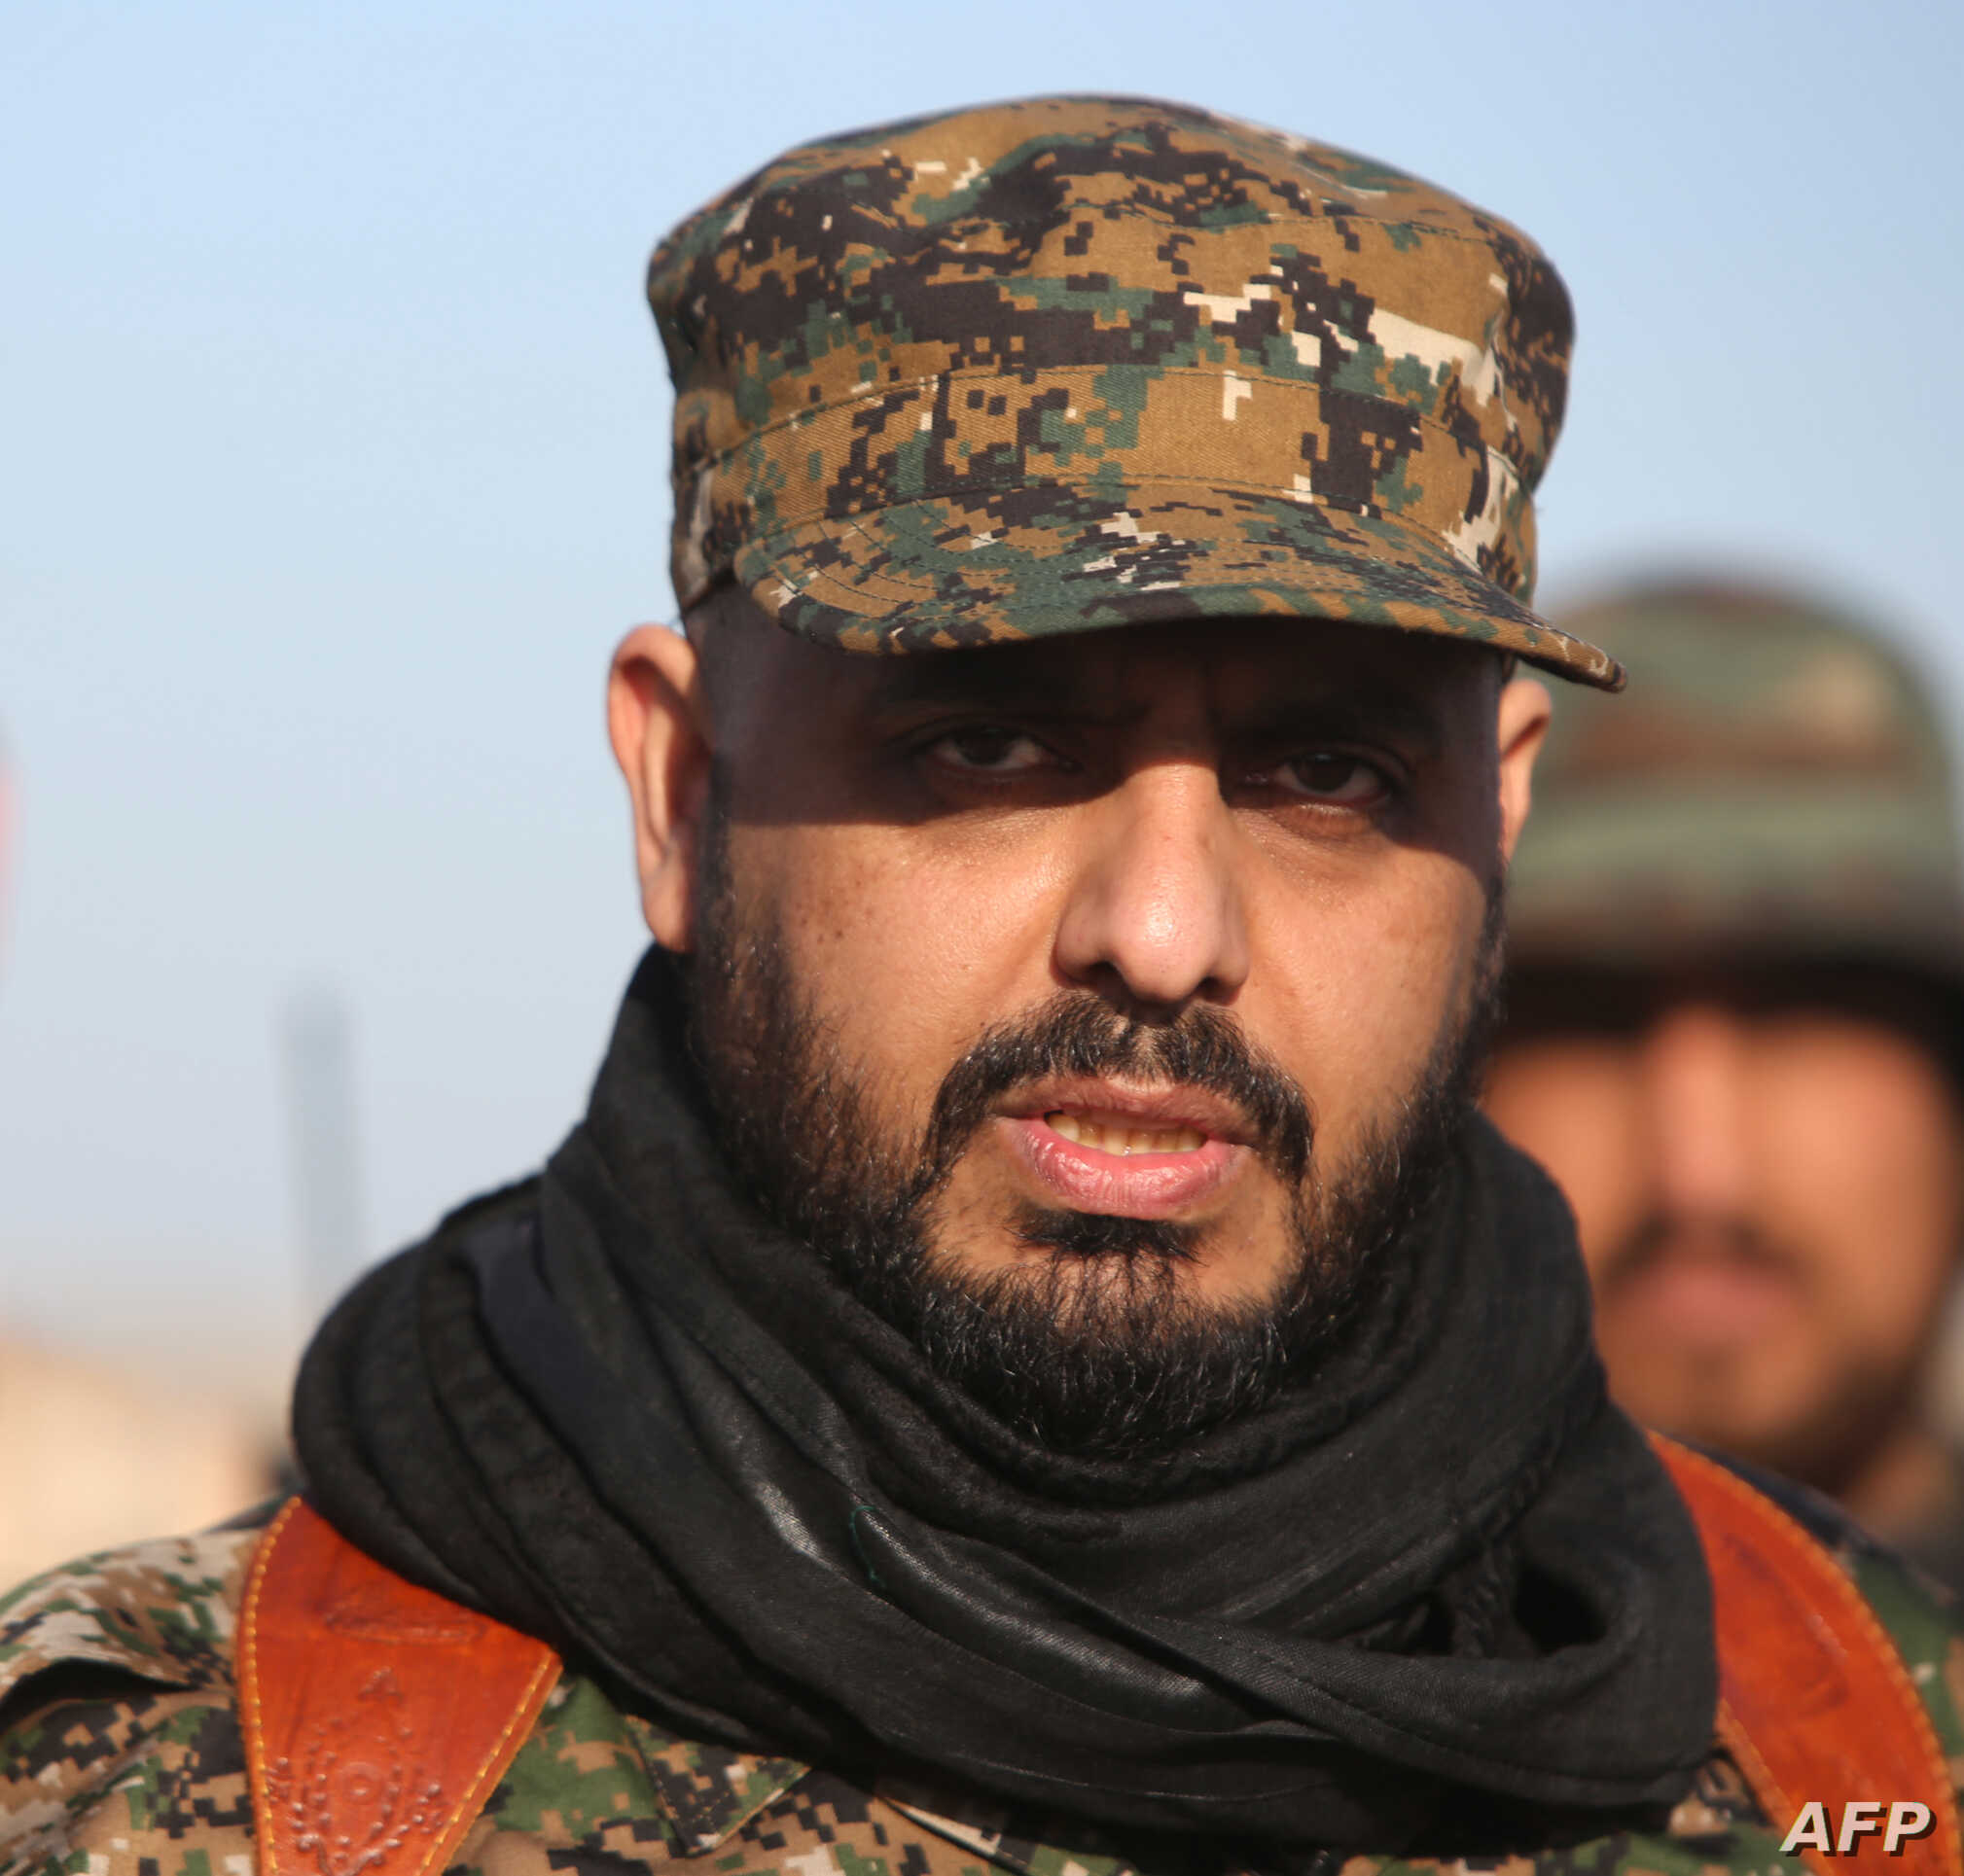 Qais al-Khazali, leader of the Shiite militia Asaib Ahl al-Haq (The League of the Righteous), looks on as he stands in the area of Albu Ajil, east of the northern city of Tikrit on March 7, 2015, during a military operation to retake the Tikrit area....